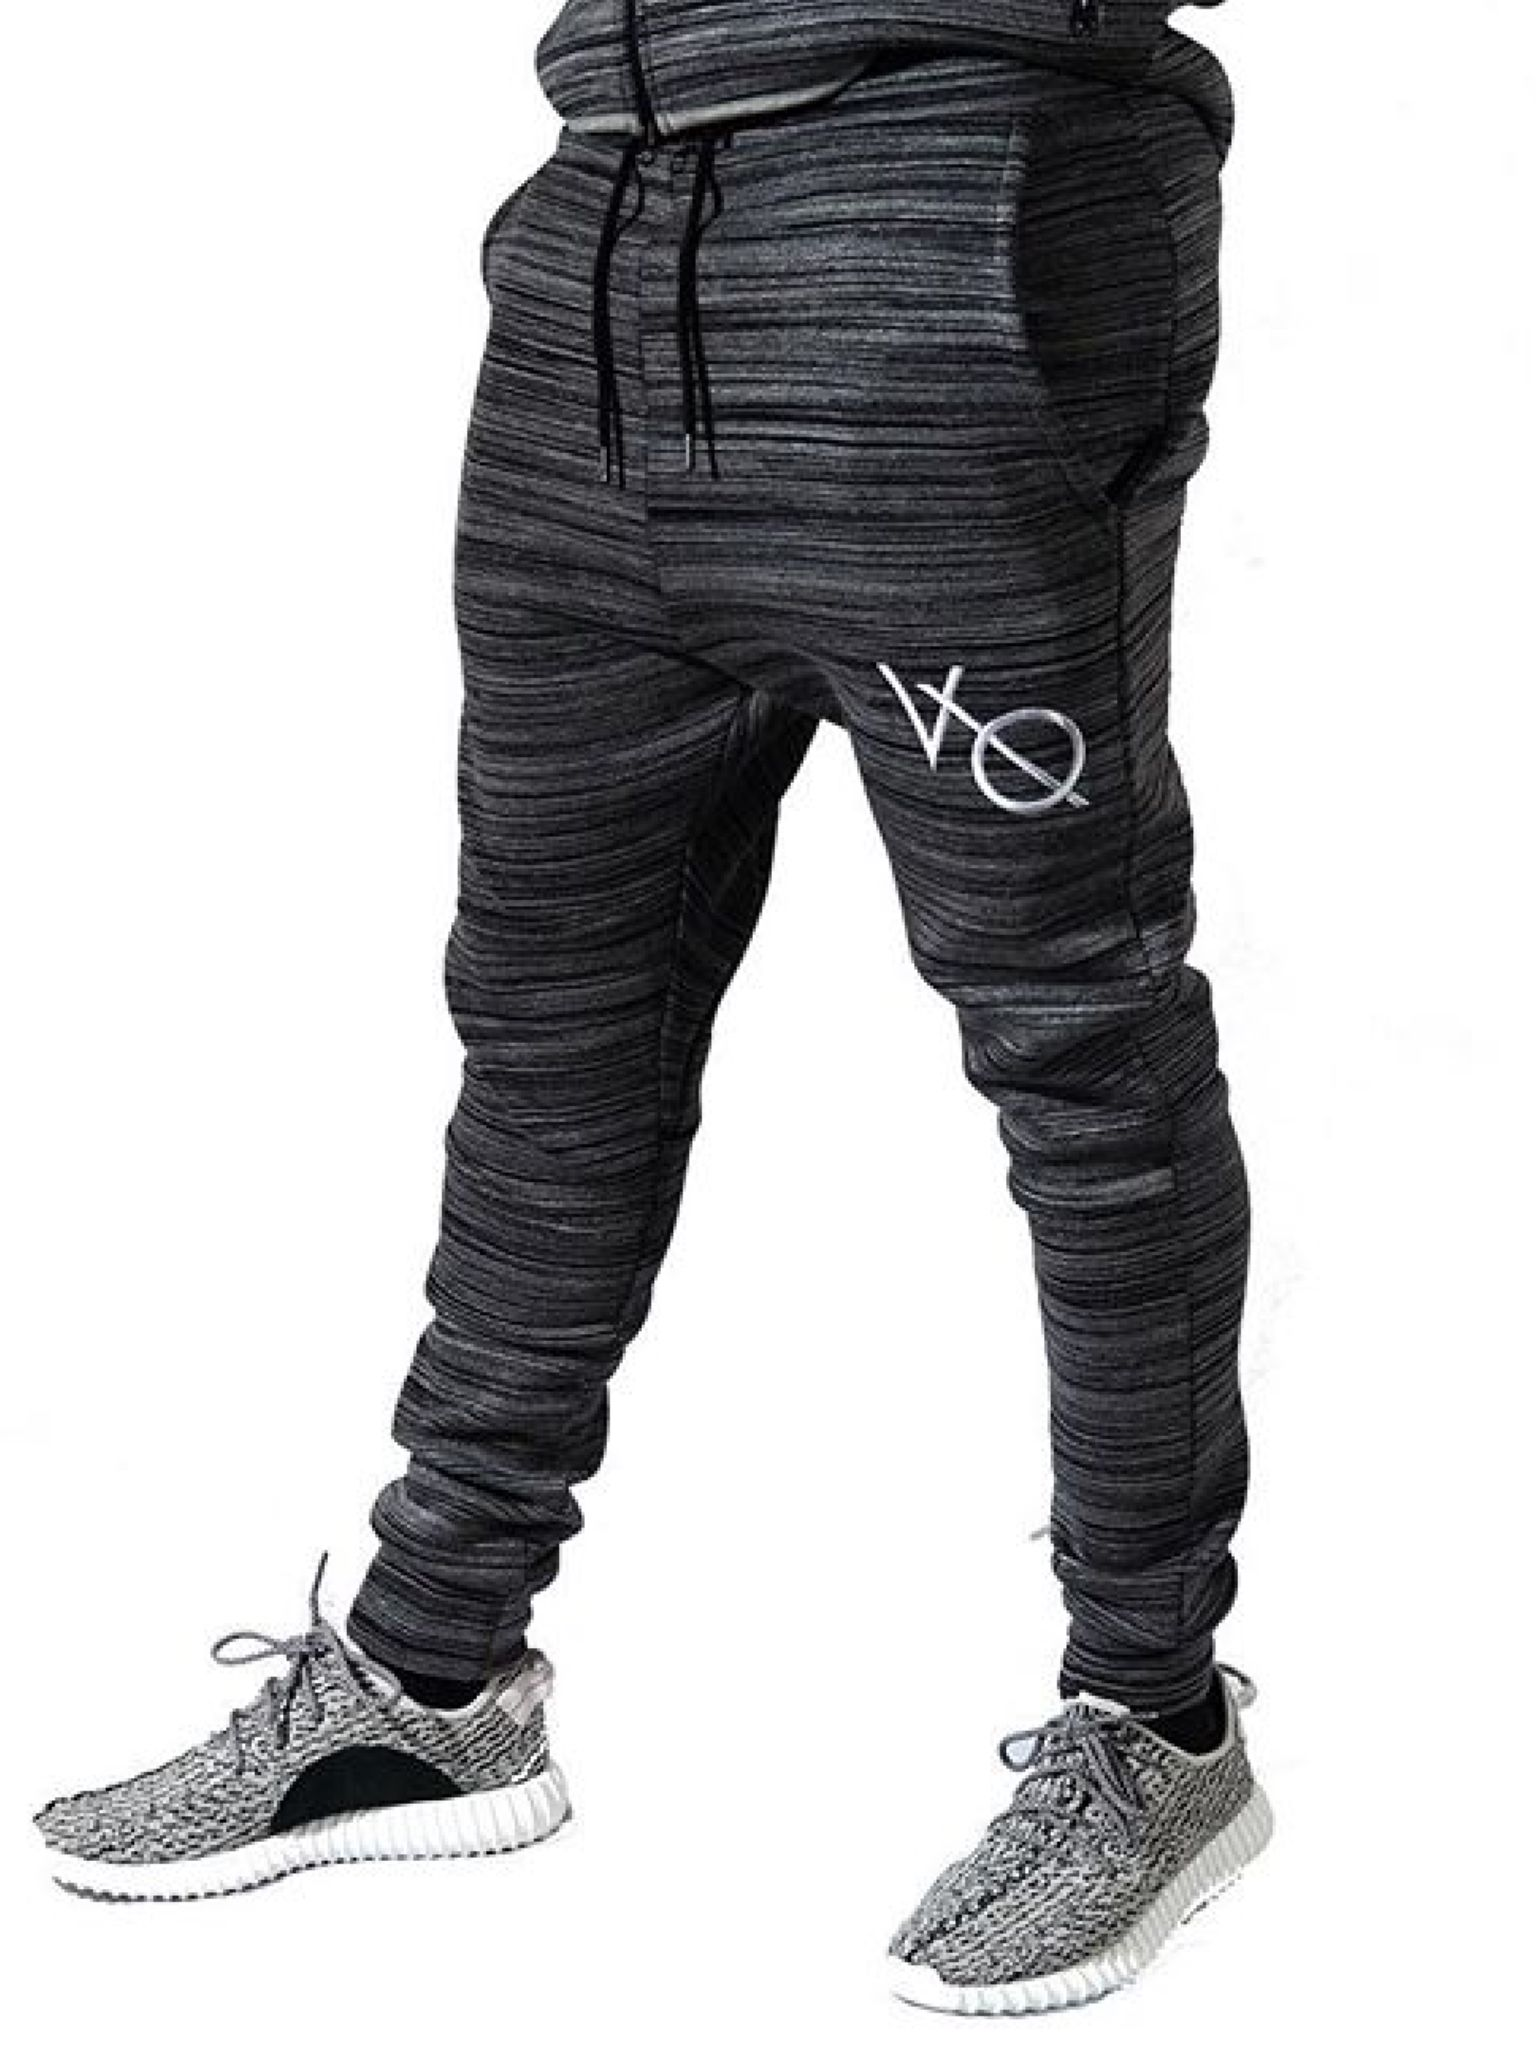 e2bb1ec89 Black Flux Sweatpants www.vqfit.com | Things to wear | Tapered ...